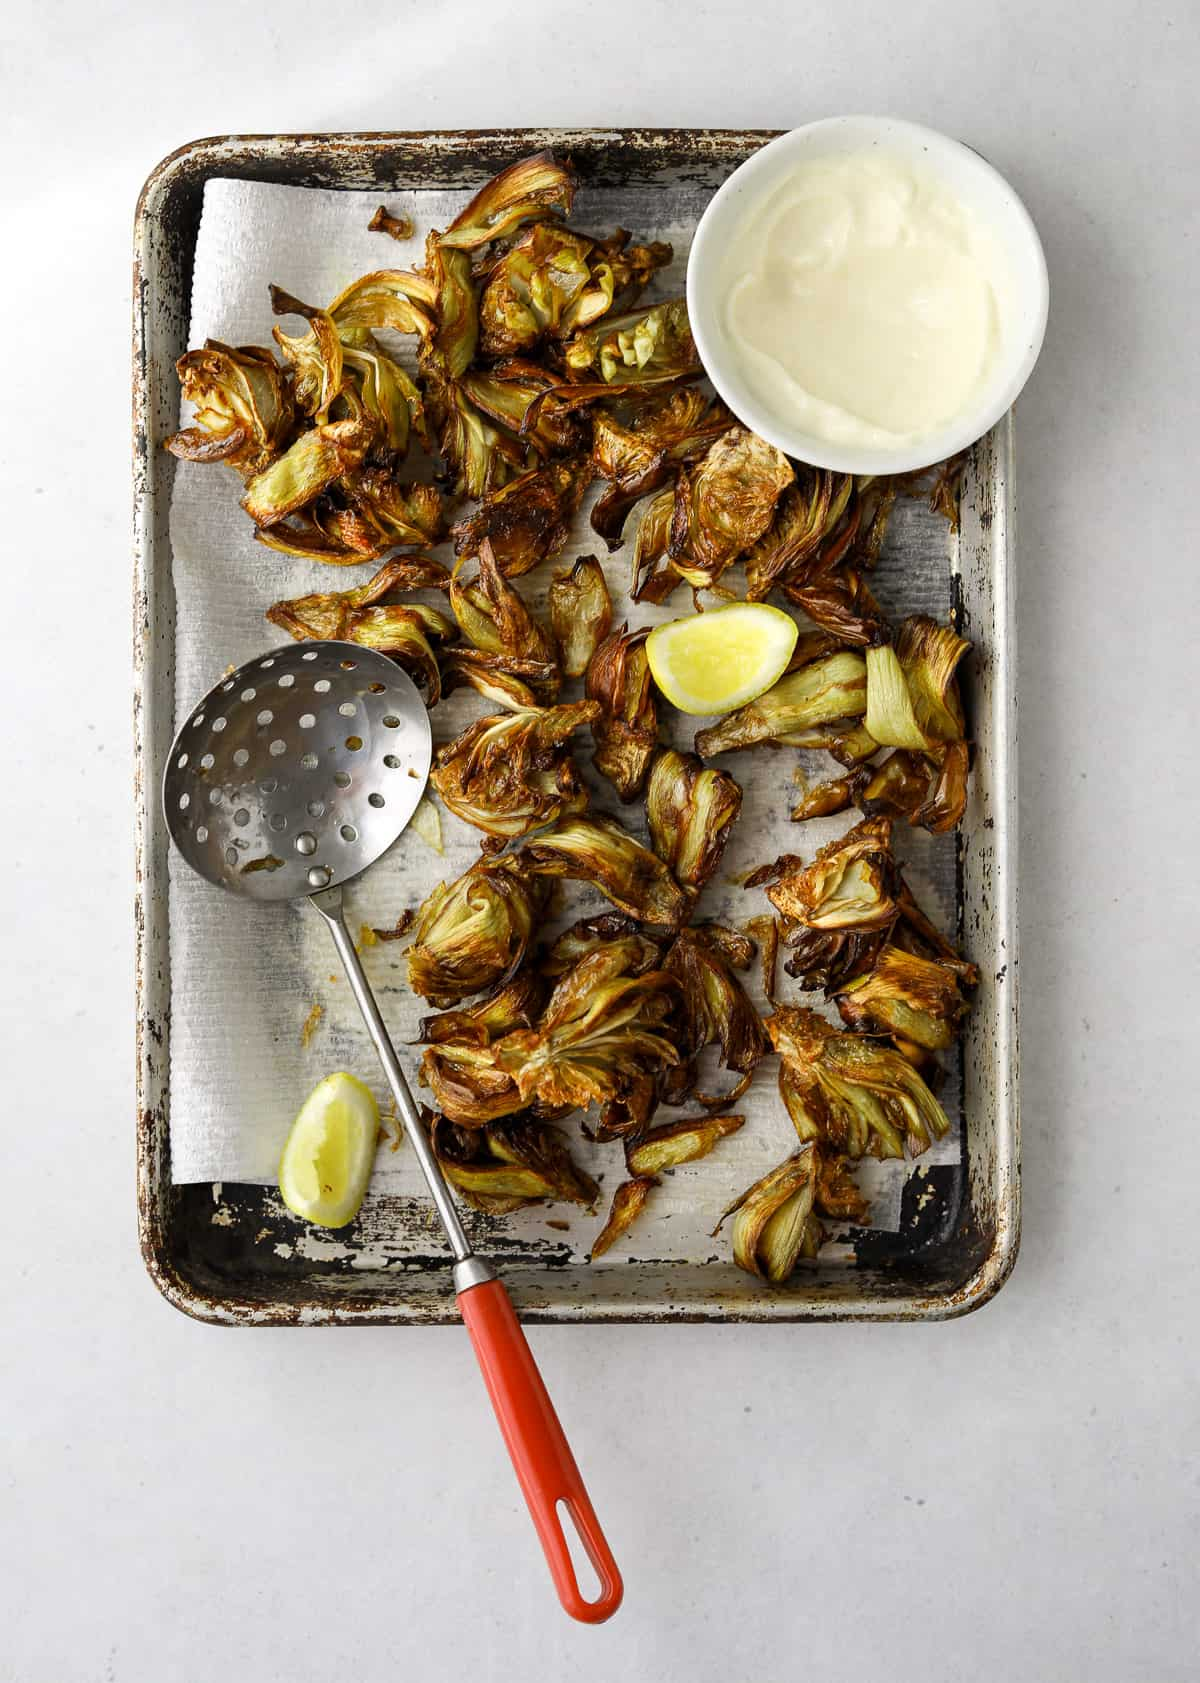 a paper towel lined baking tray with fried artichokes, lemon wedges and a bowl of lemon aioli